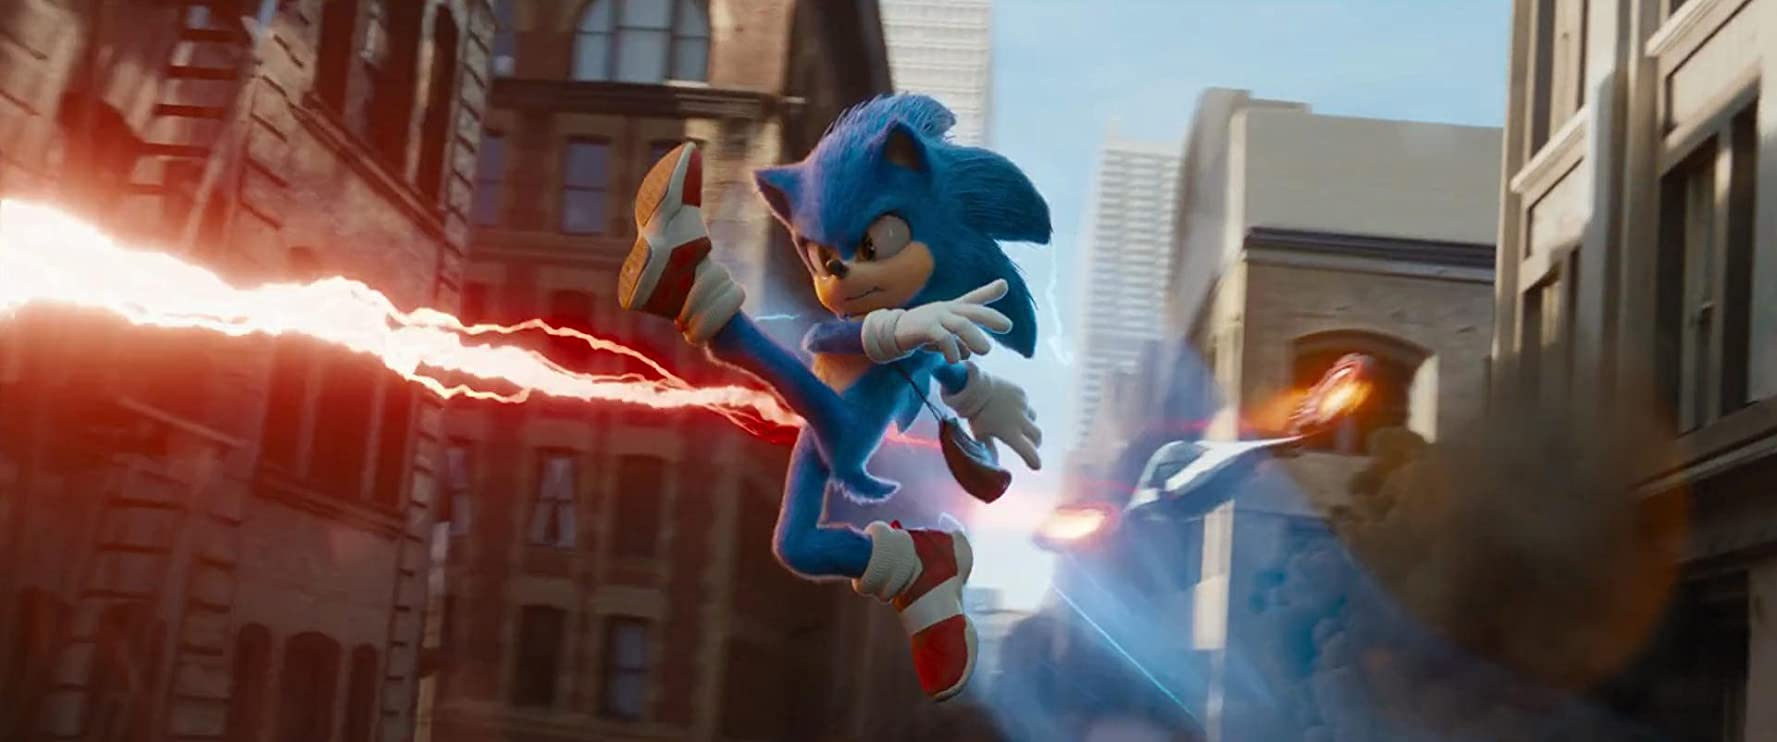 Sonic The Hedgehog Screenwriters Josh Miller Patrick Casey On Adapting A Classic Video Game Exclusive Interview Discussingfilm